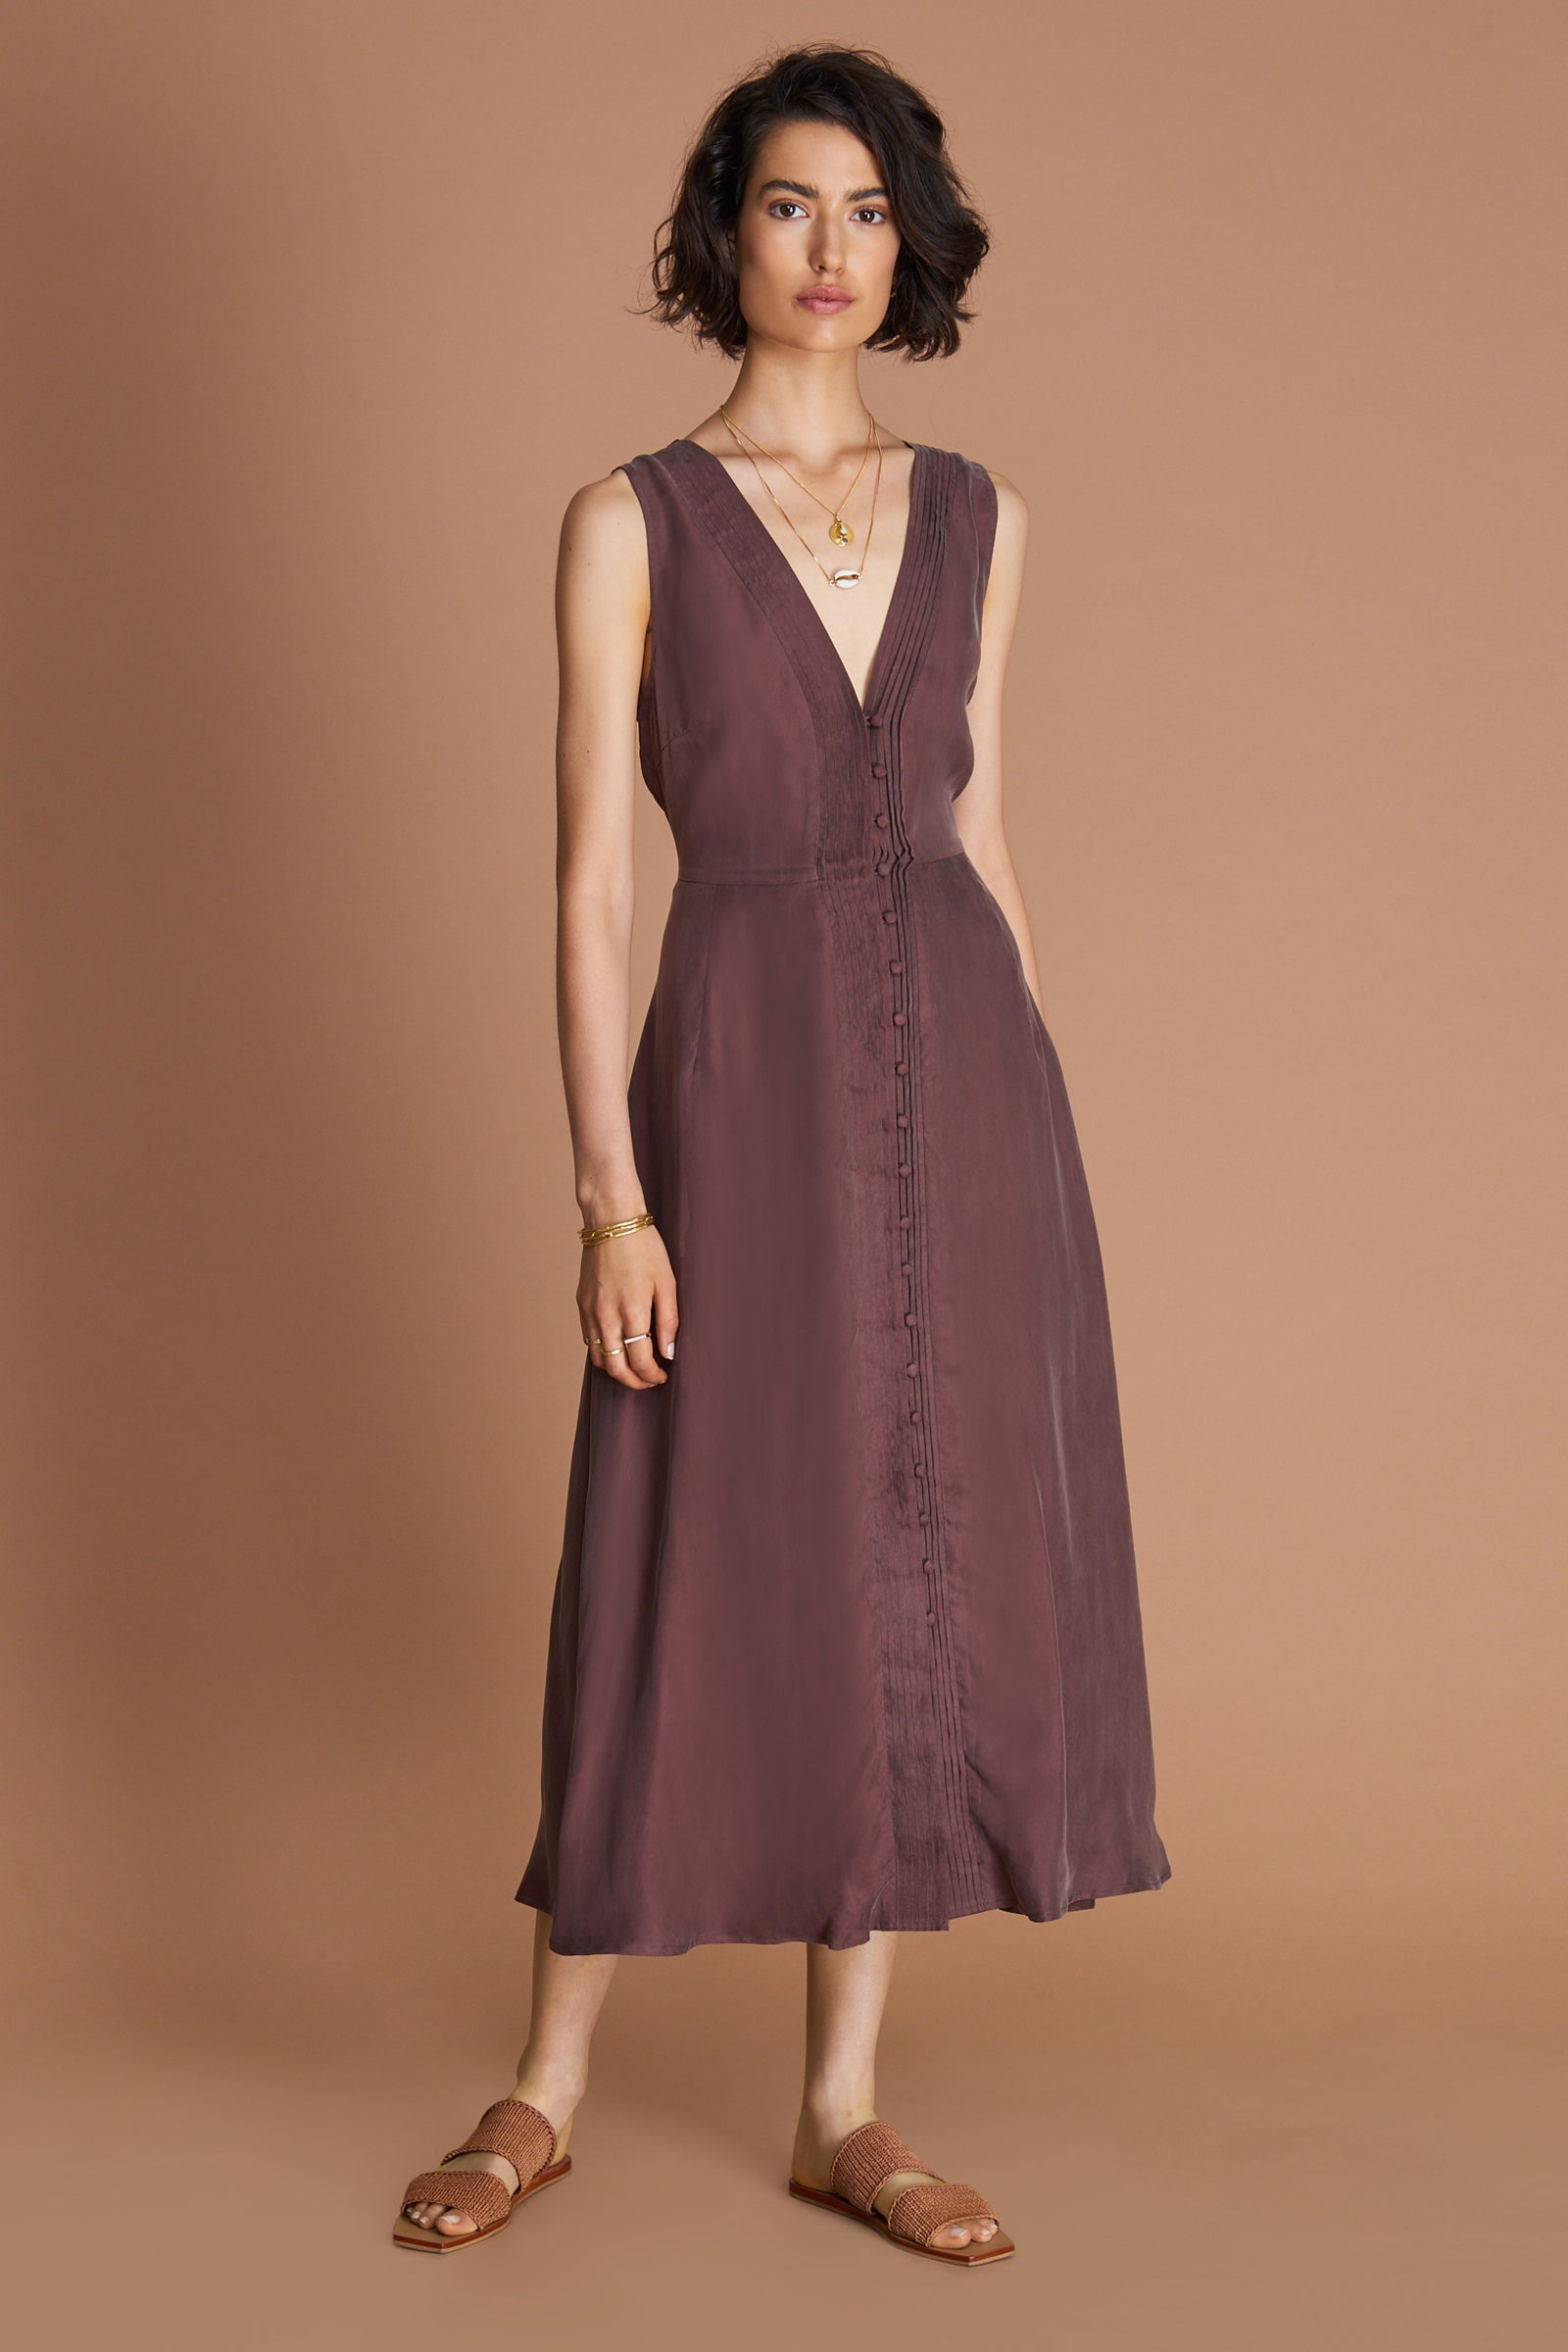 THE KIMA DRESS